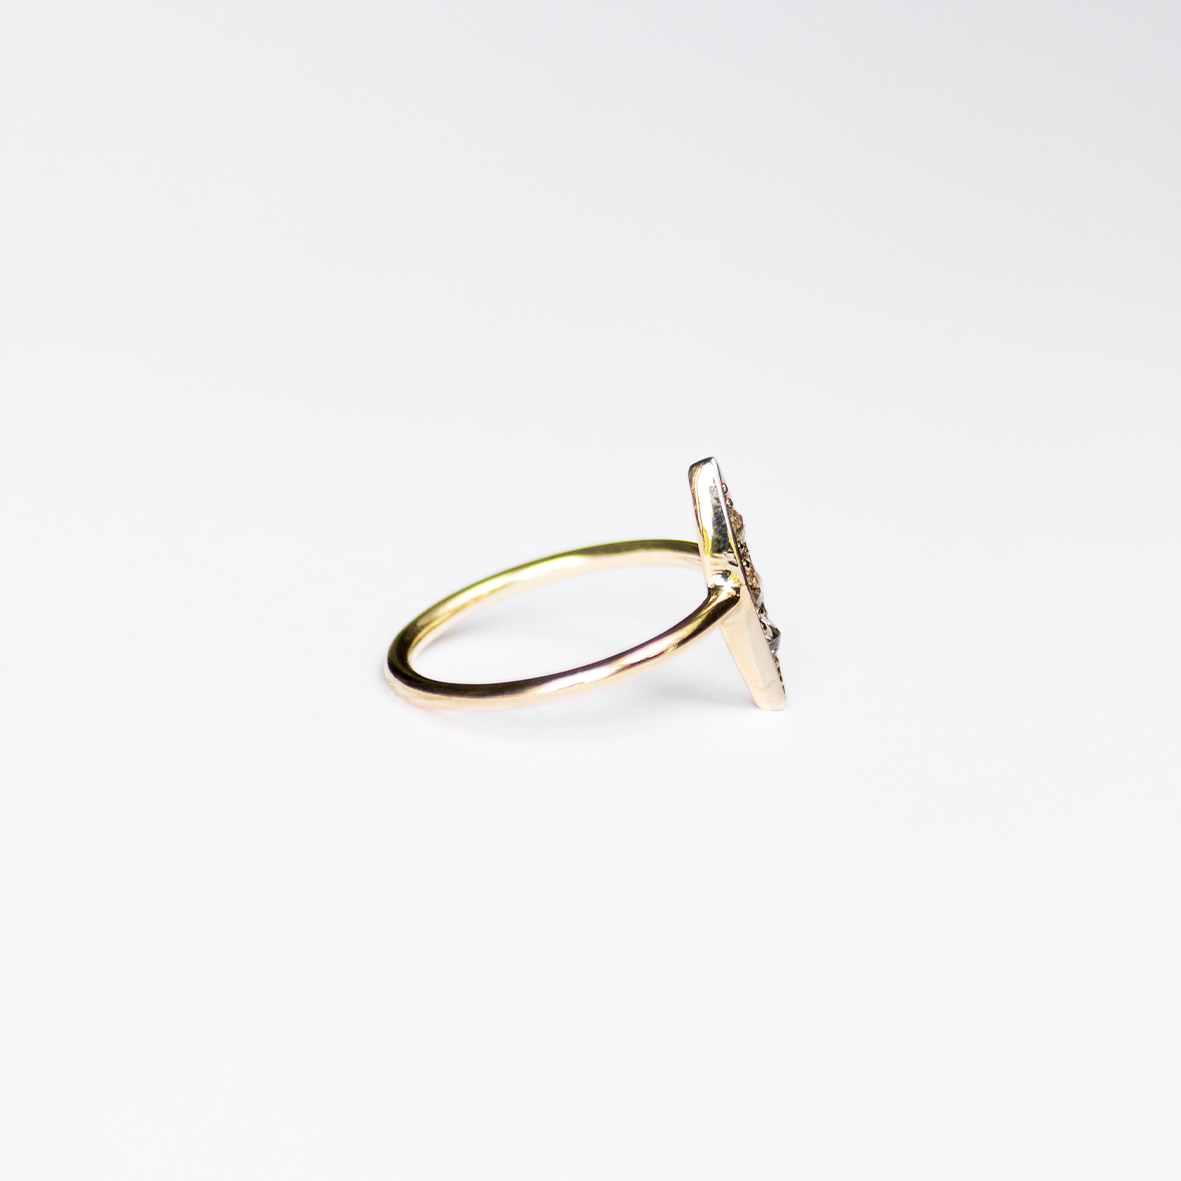 2. OONA_lotus_ficha2_leaf ring copia